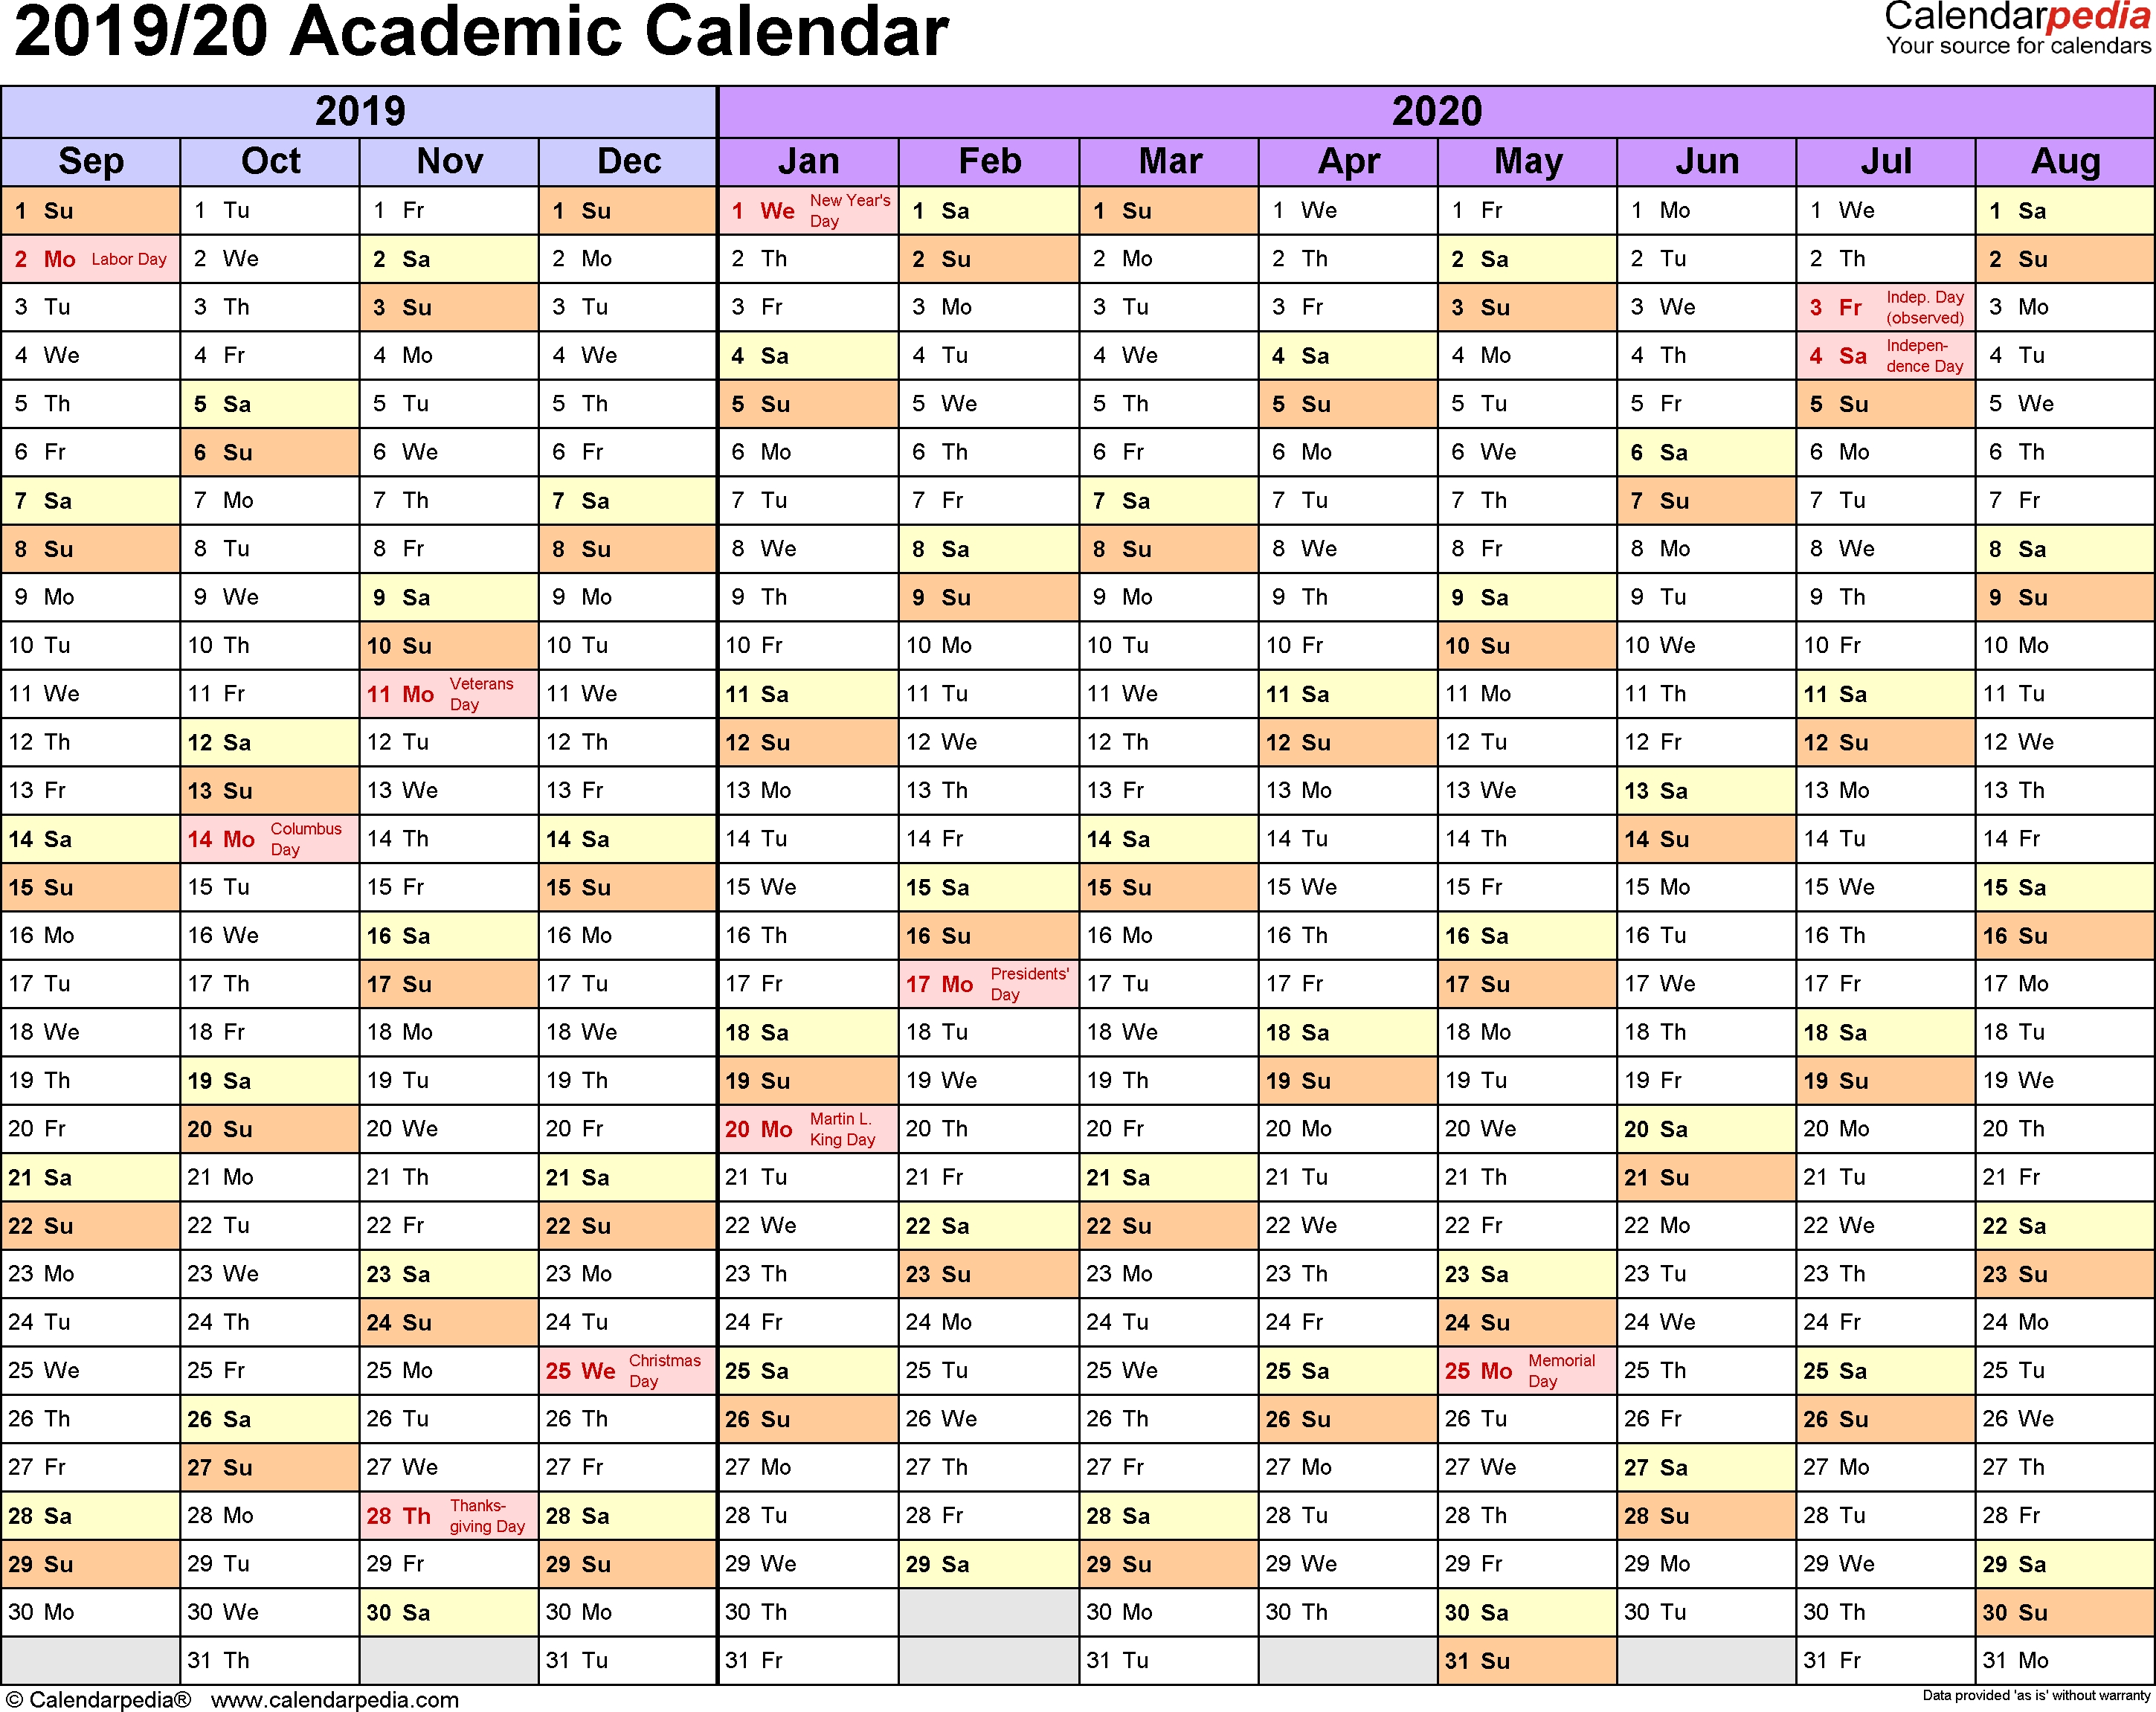 Academic Calendars 2019/2020 - Free Printable Excel Templates within Large Calendar 2019/2020